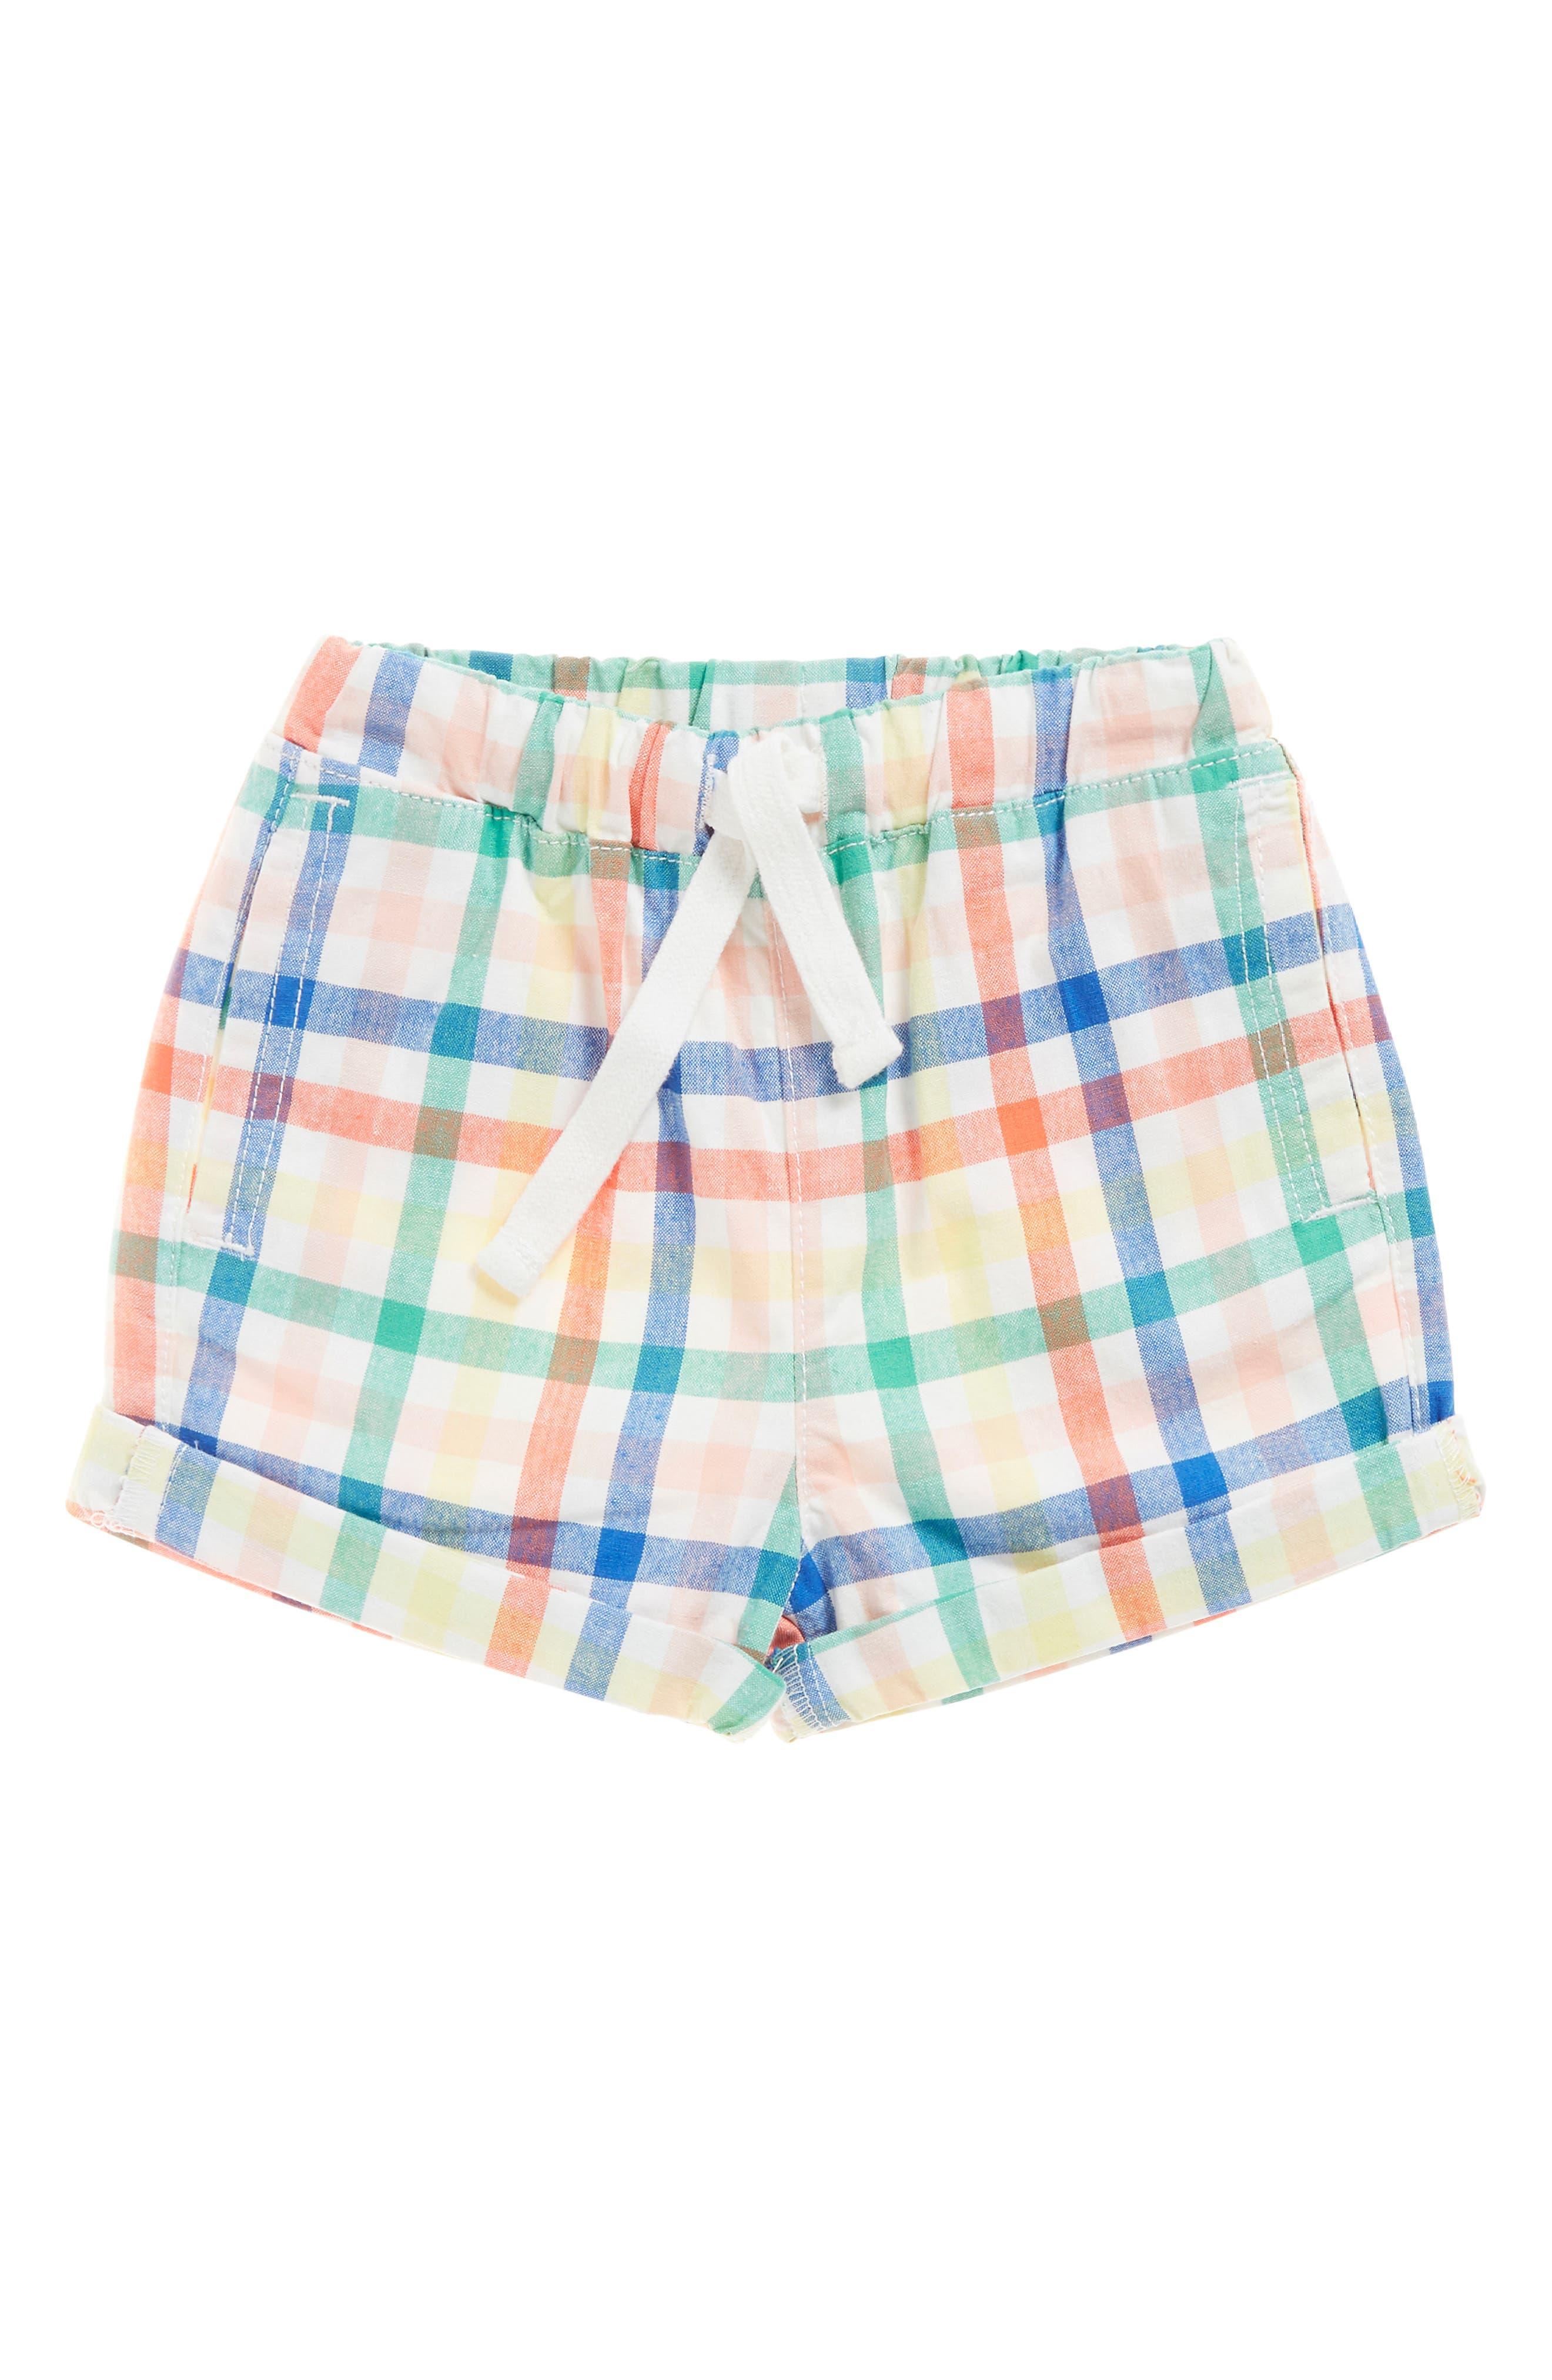 SEED HERITAGE,                             Plaid Woven Shorts,                             Main thumbnail 1, color,                             MULTI